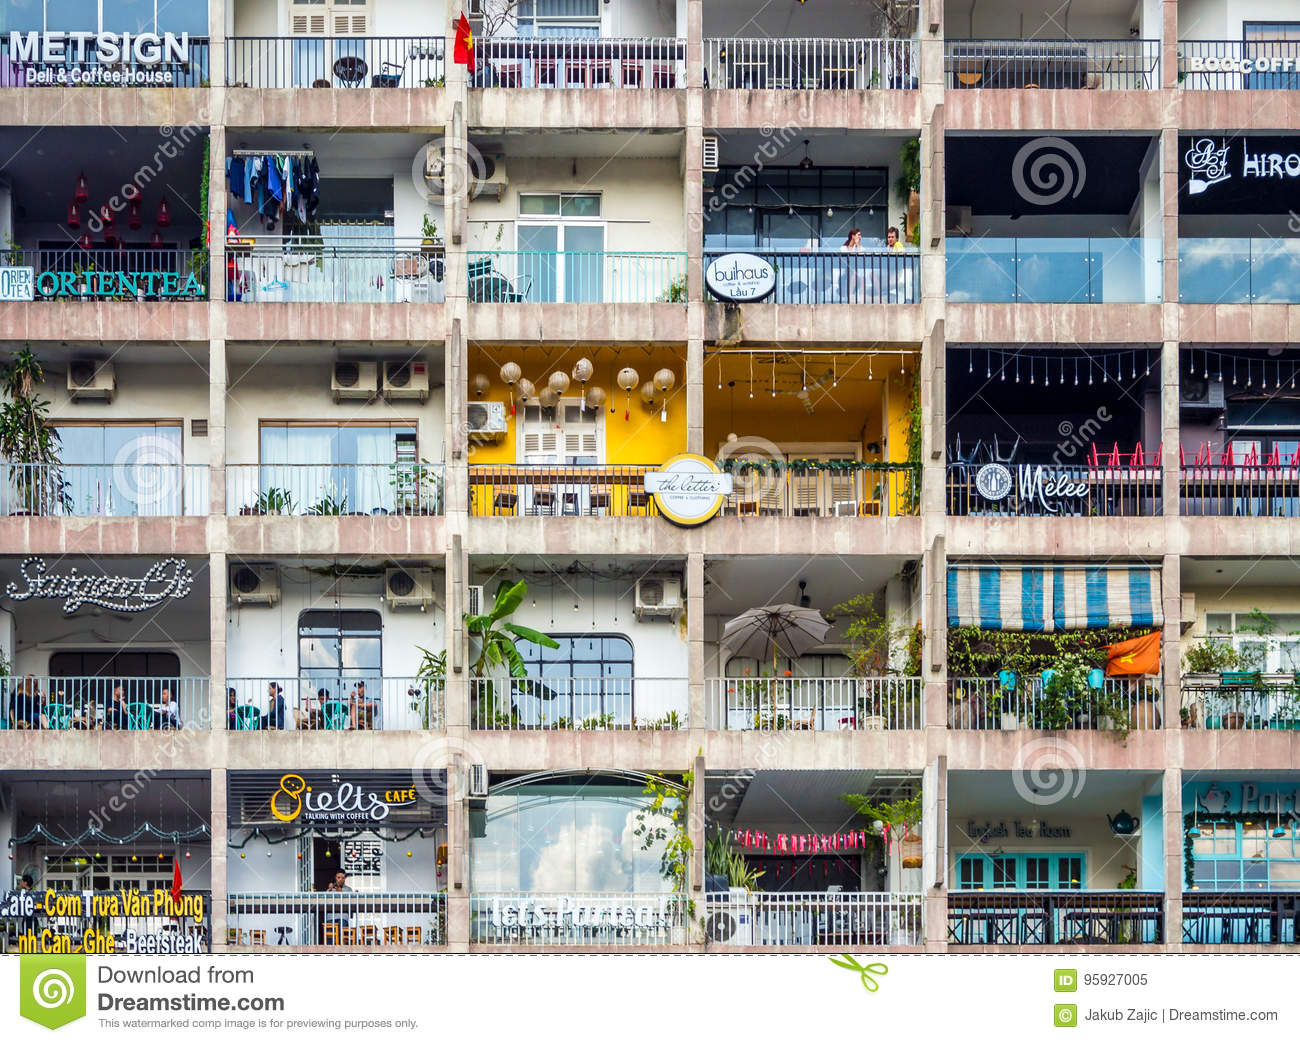 Saigon, Ho Chi Minh City, Vietnam, January 2017: [ Apartment building with many flats and shops, Saigon Vietnamese living style in